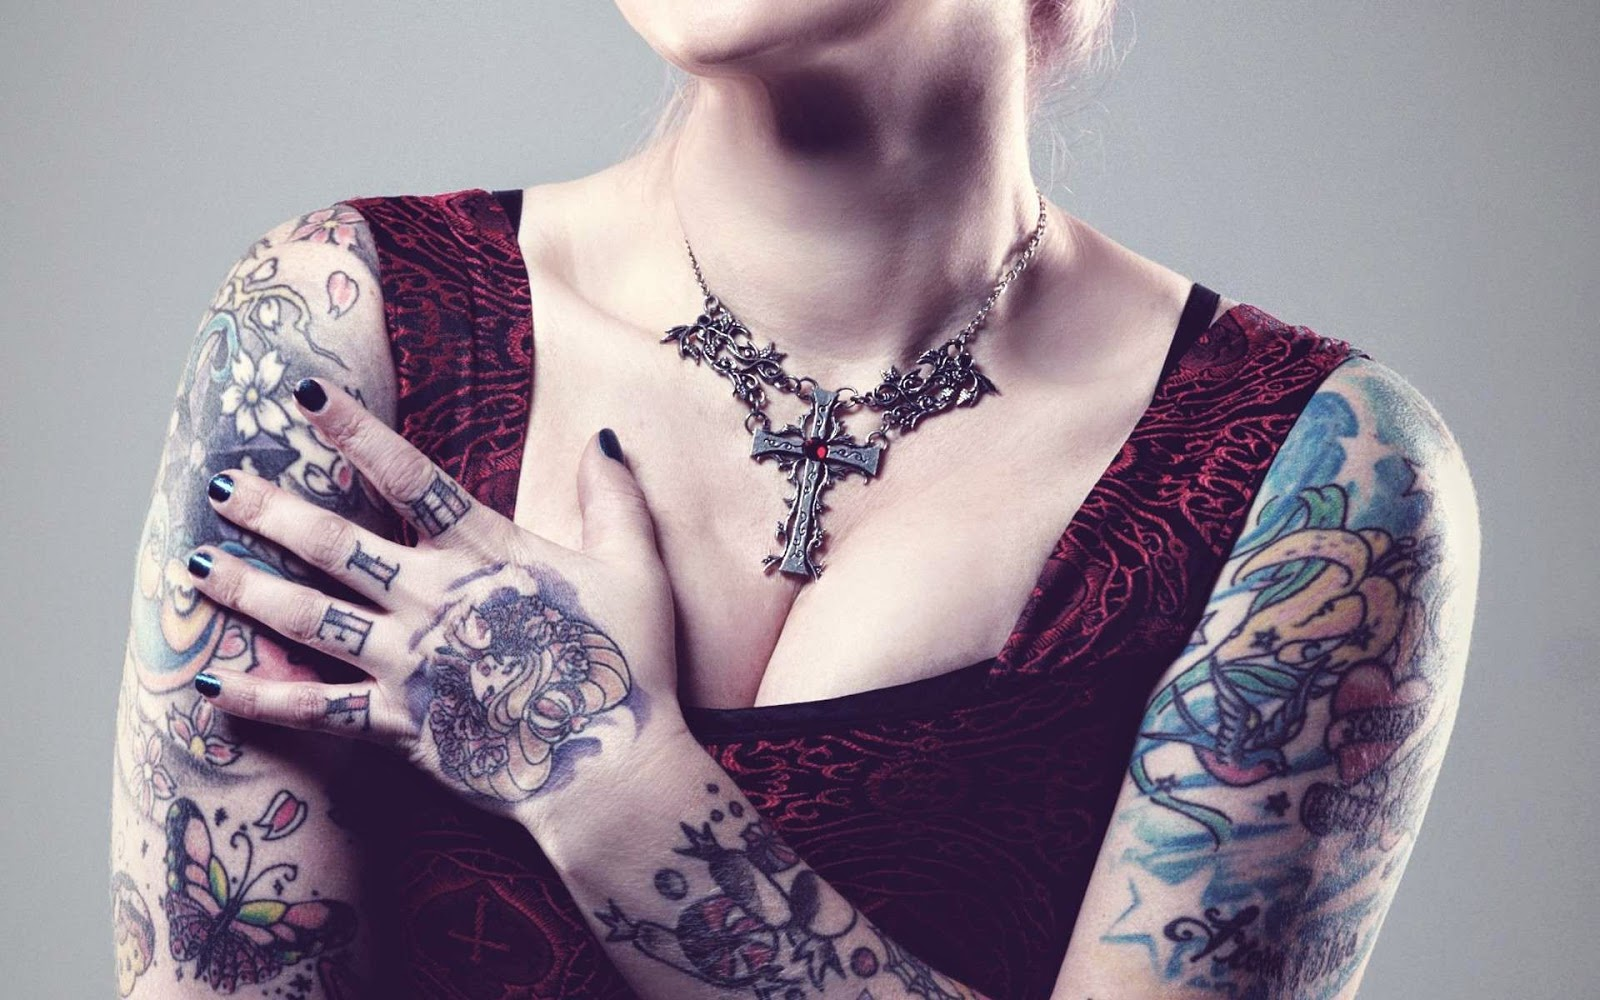 Best tattoo girl collection in the world - Full Body Tattoos